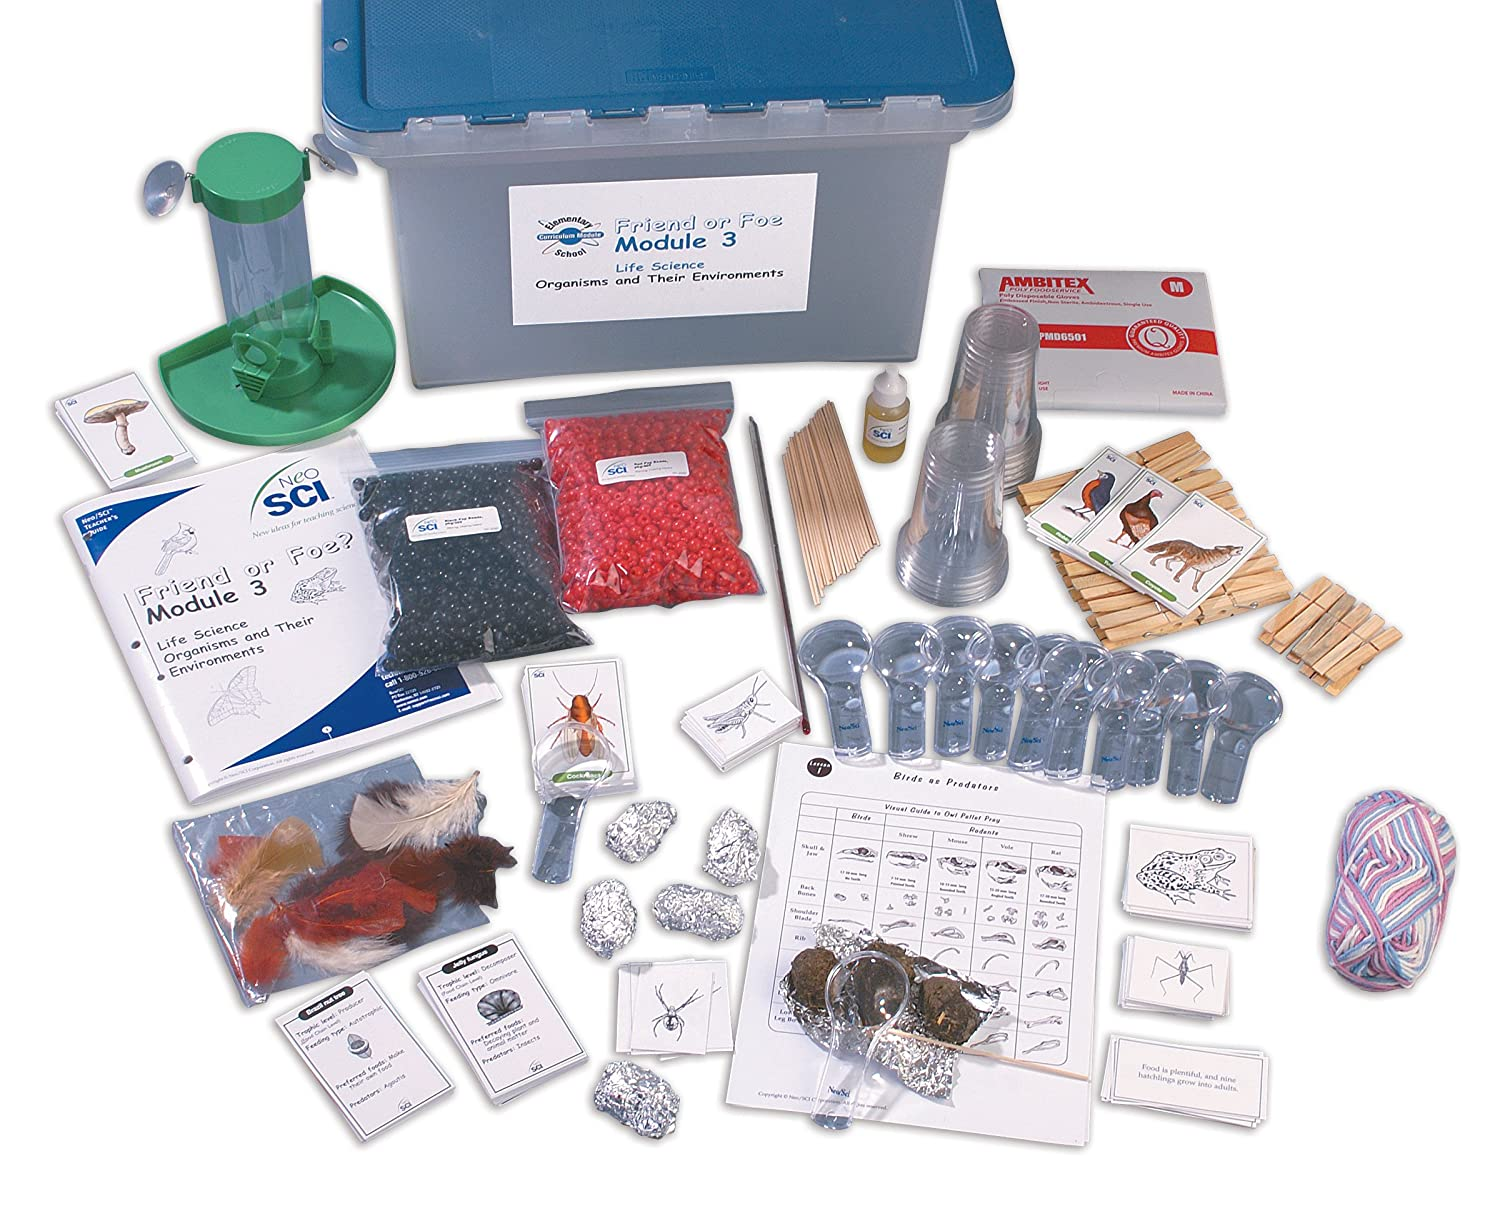 Neo SCI Cash special price 050-3341 ESCM Friend or 32 Kit Students For Free shipping anywhere in the nation Foe